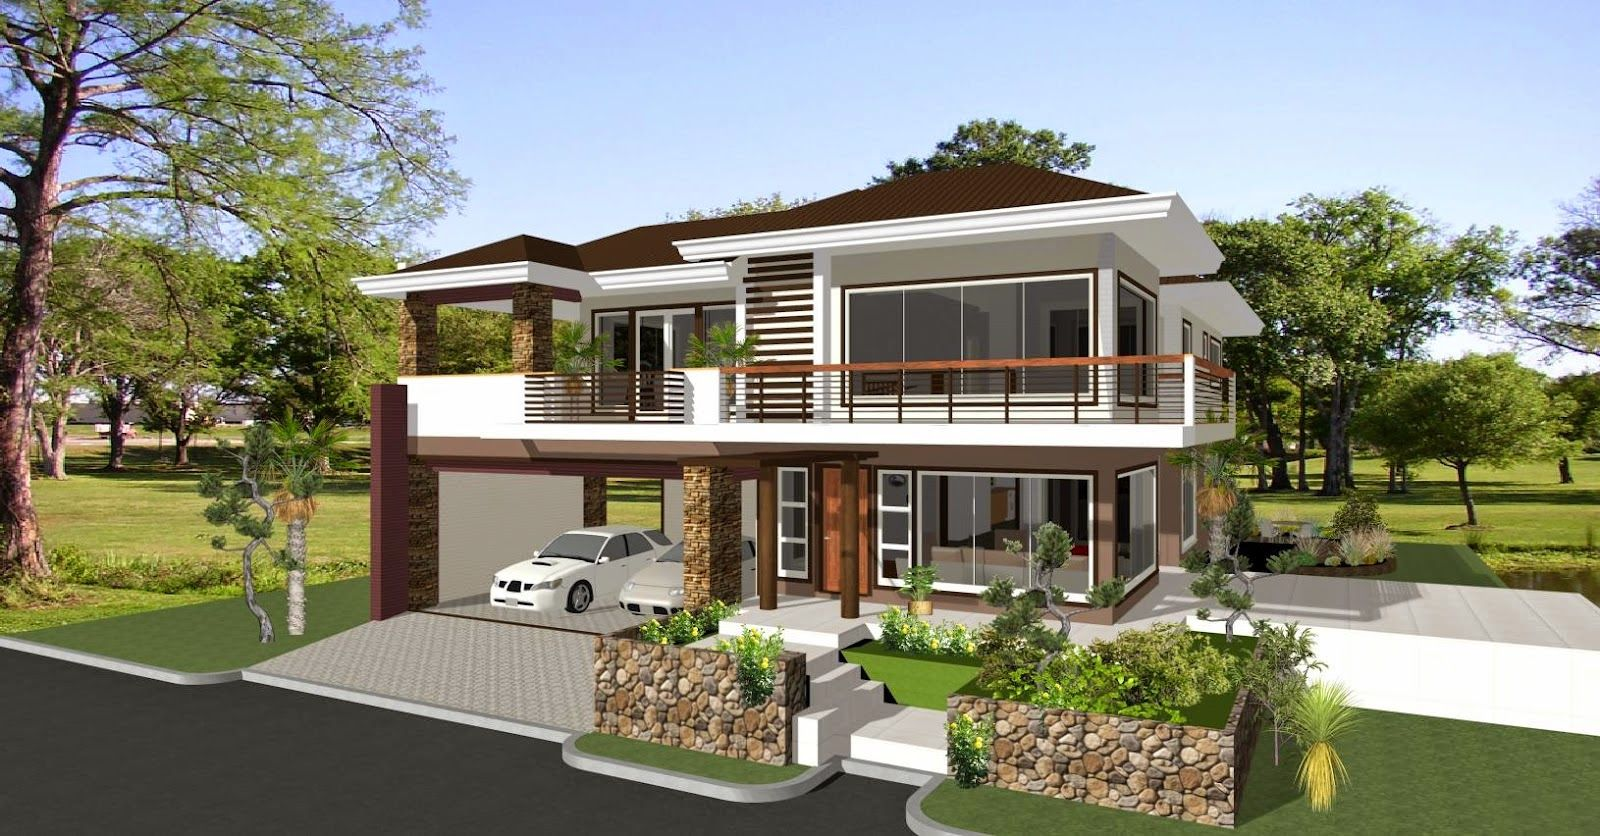 Awesome Realistic House Design Games Check more at httpwww